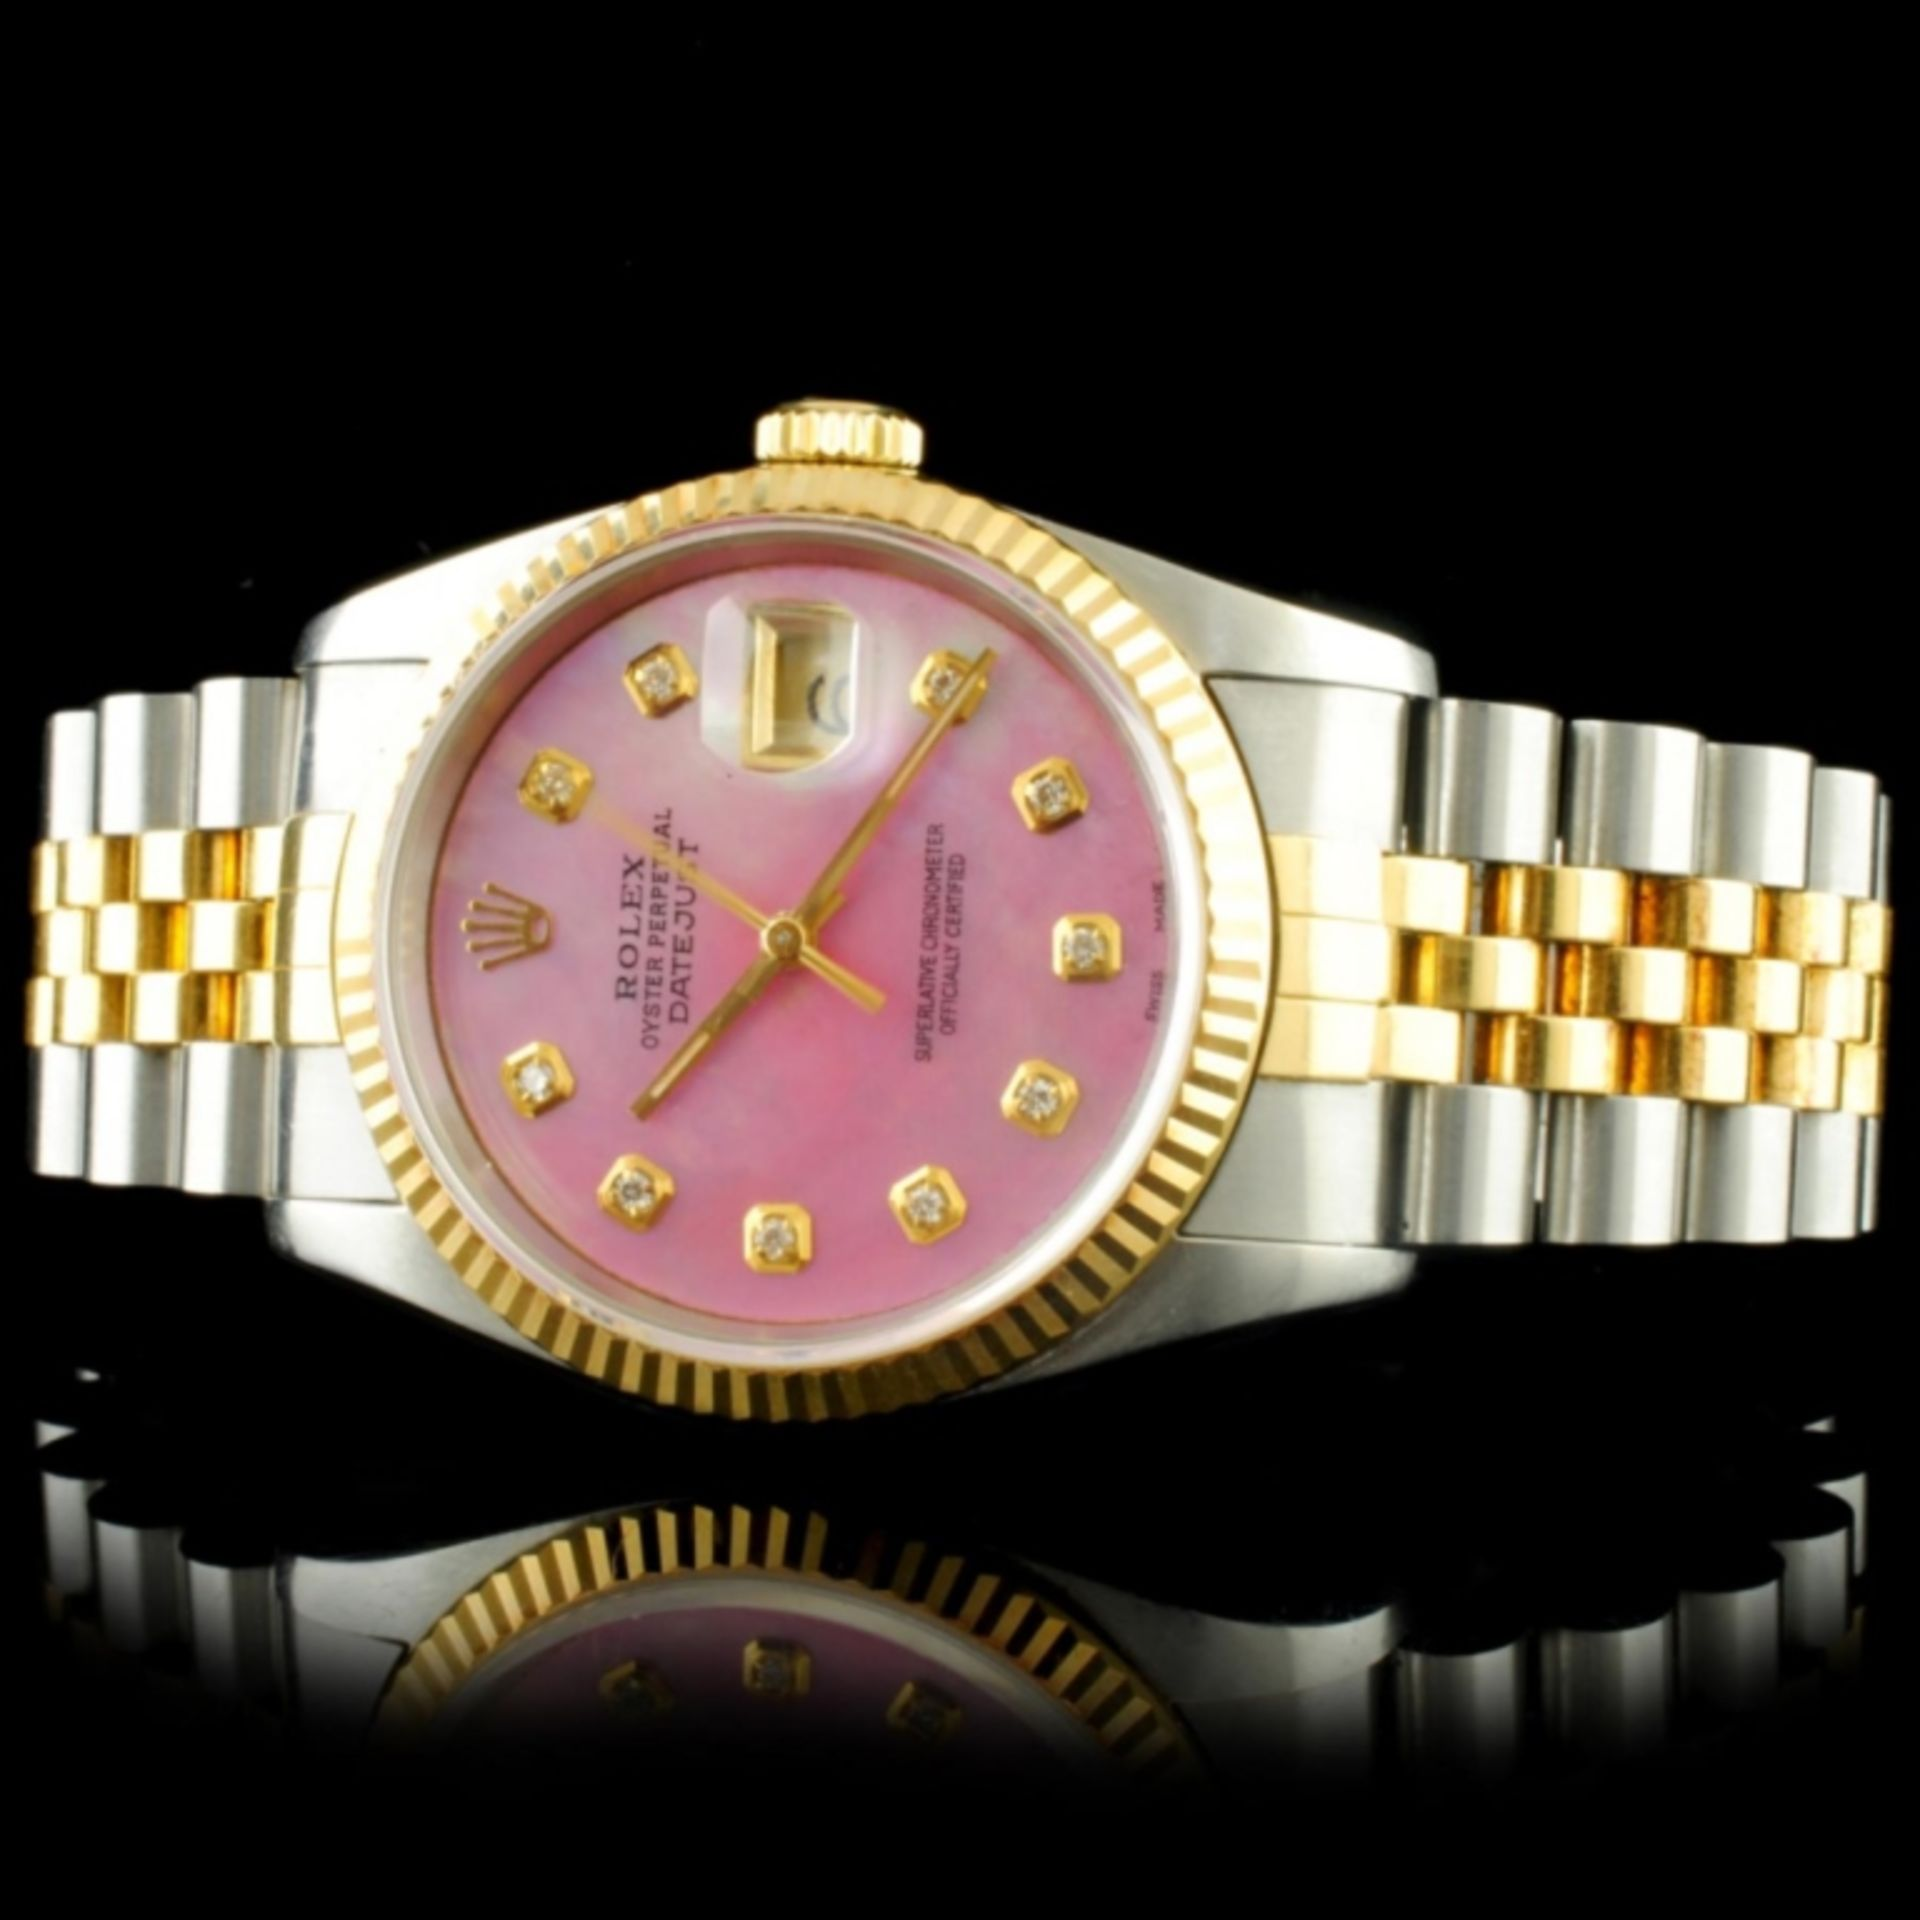 Rolex DateJust YG/SS Diamond 36MM Wristwatch - Image 2 of 5